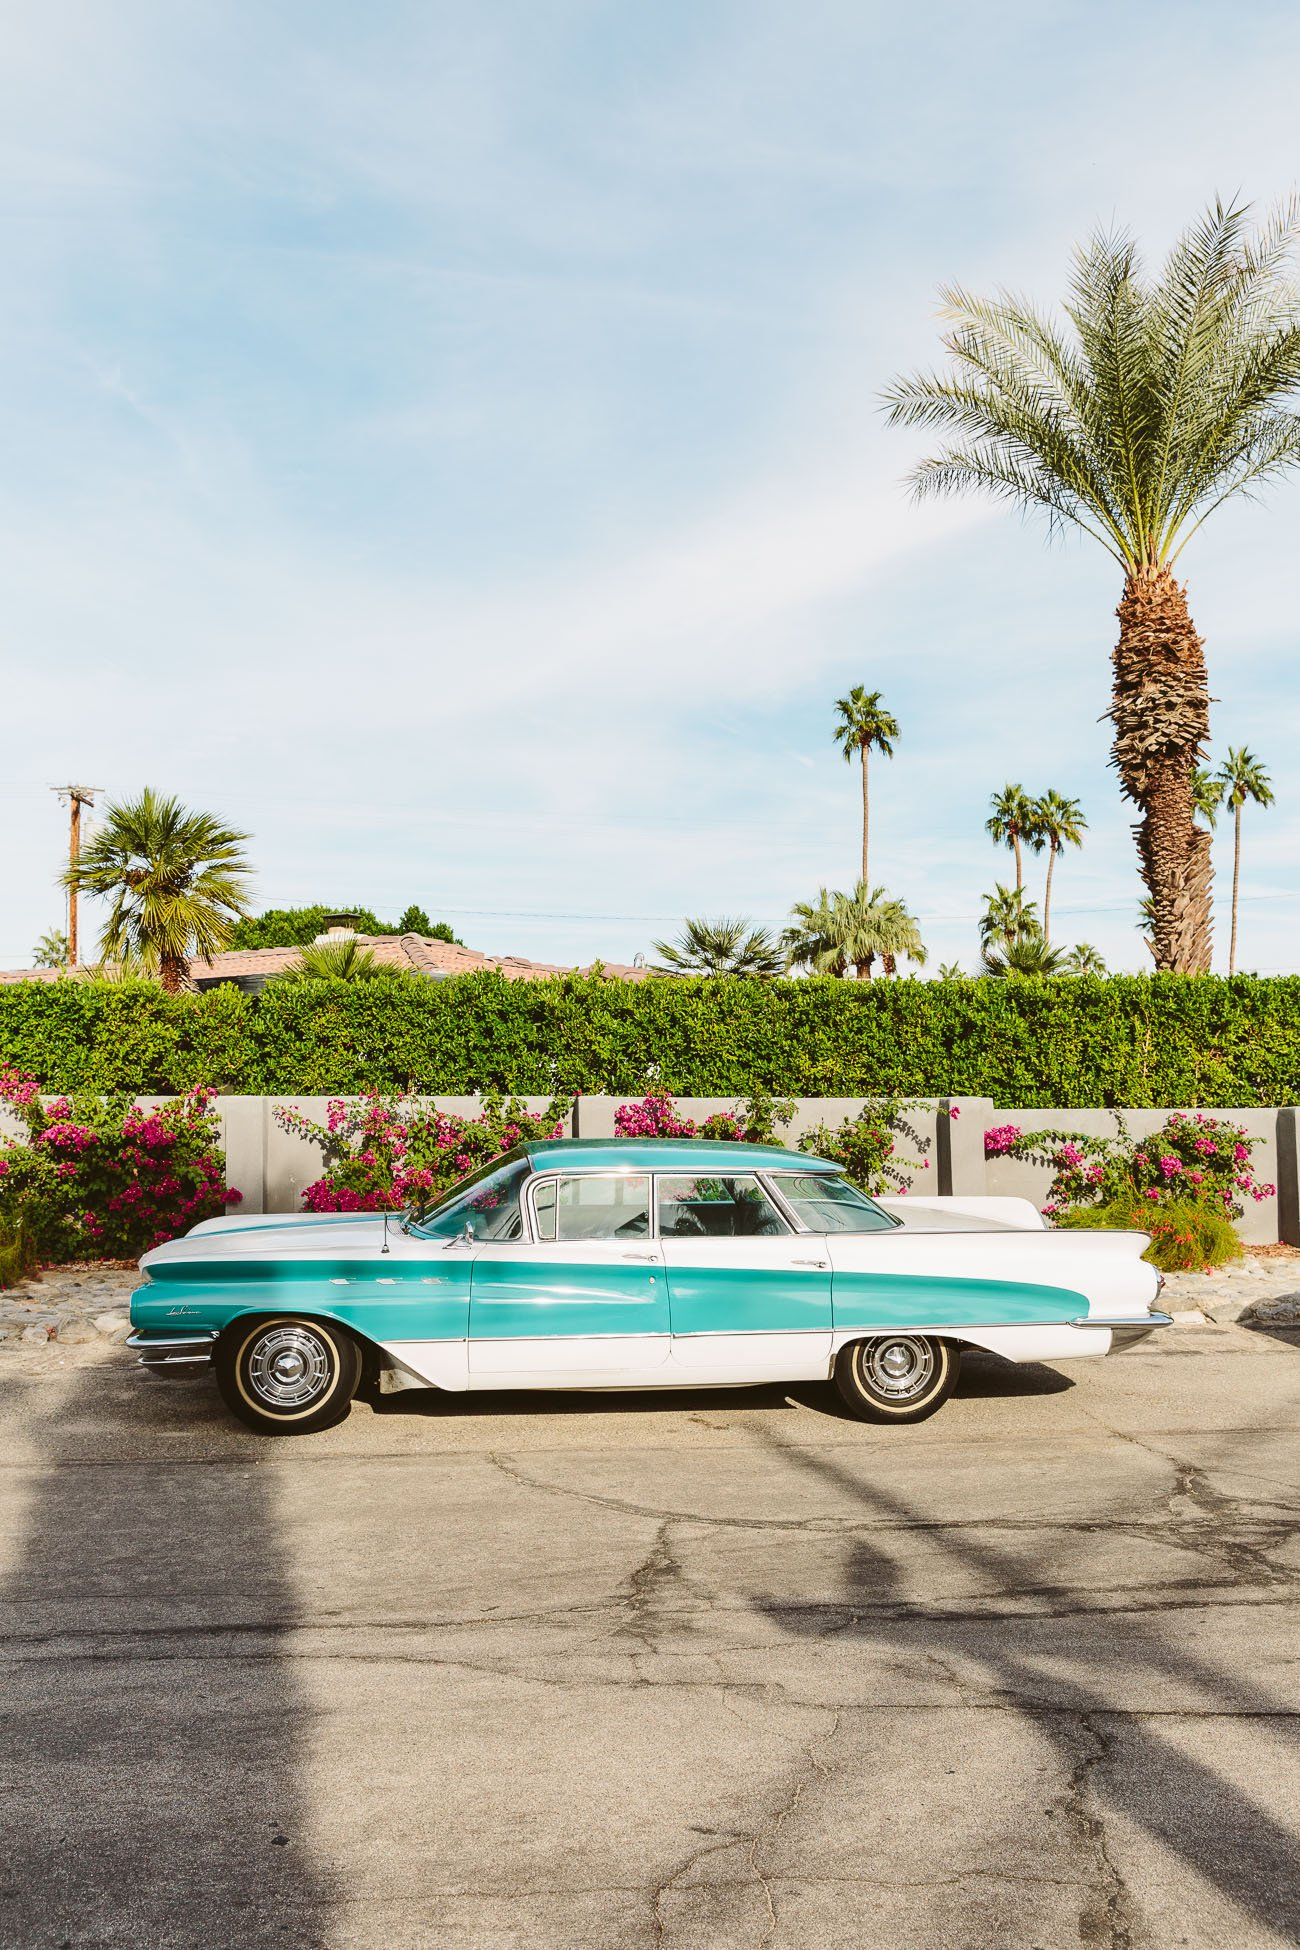 Vintage Car in Palm Springs